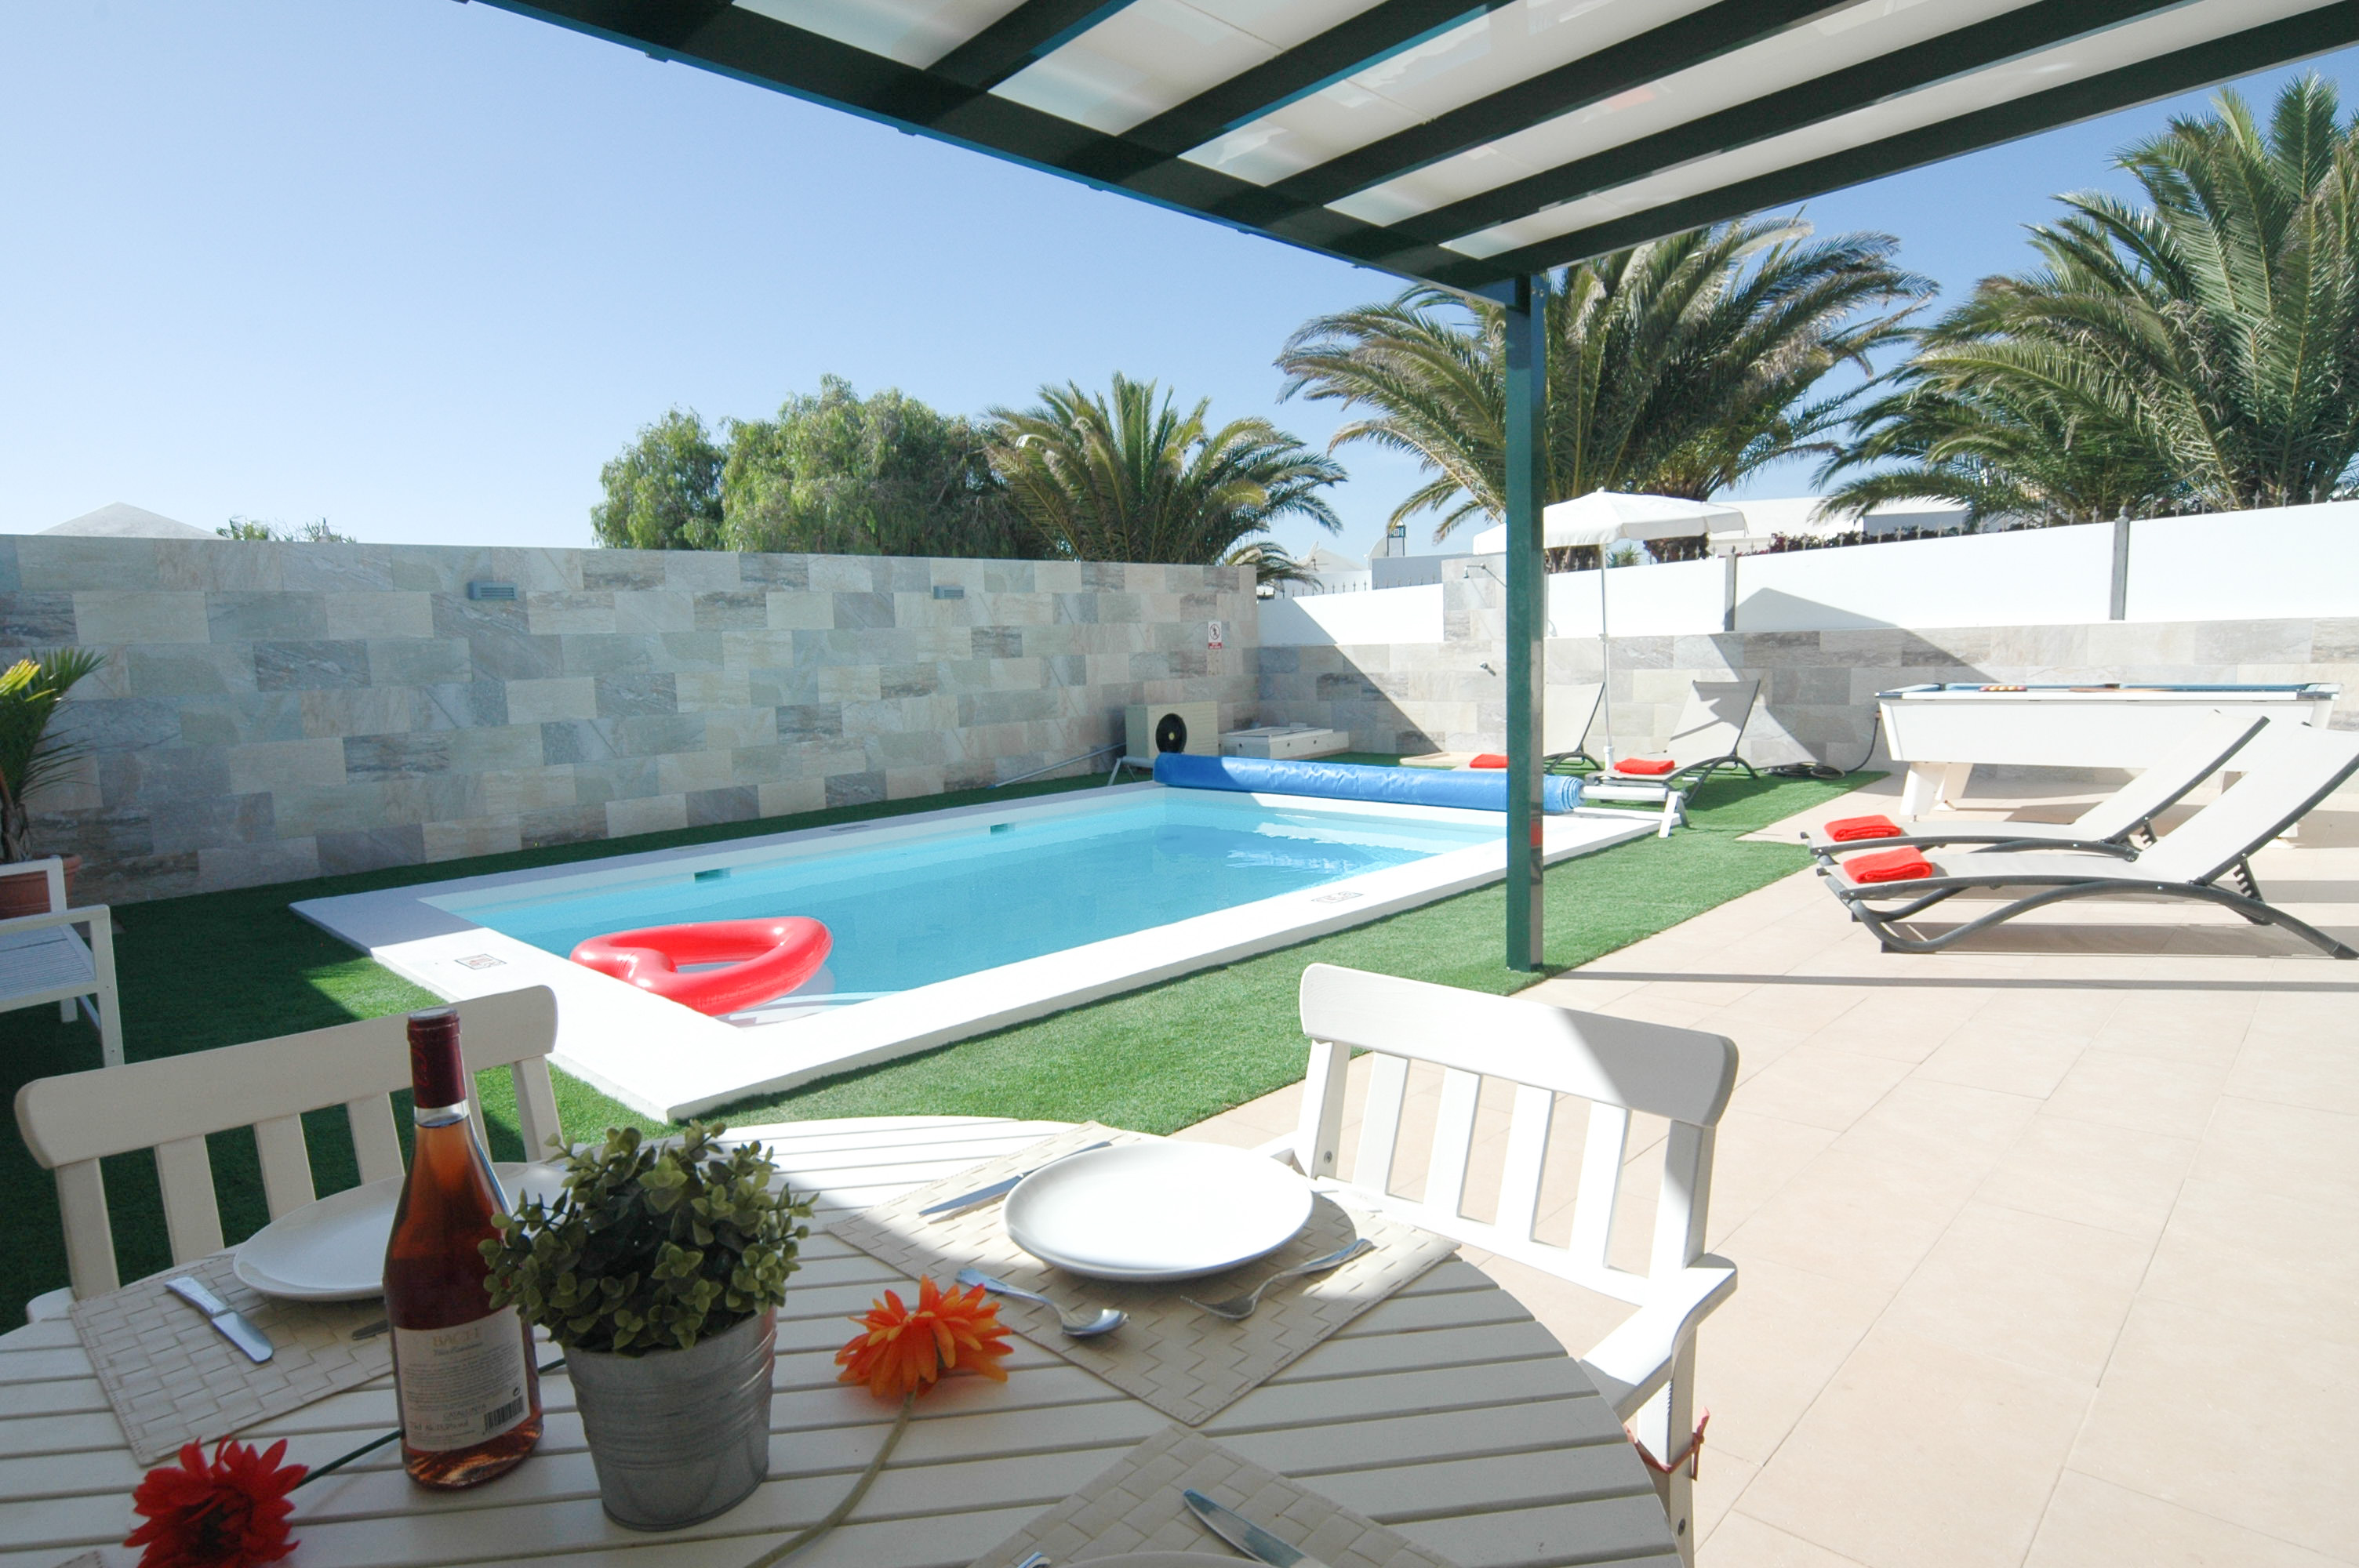 Lanzarote Holiday Villa in Matagorda for rent - 2 bedrooms